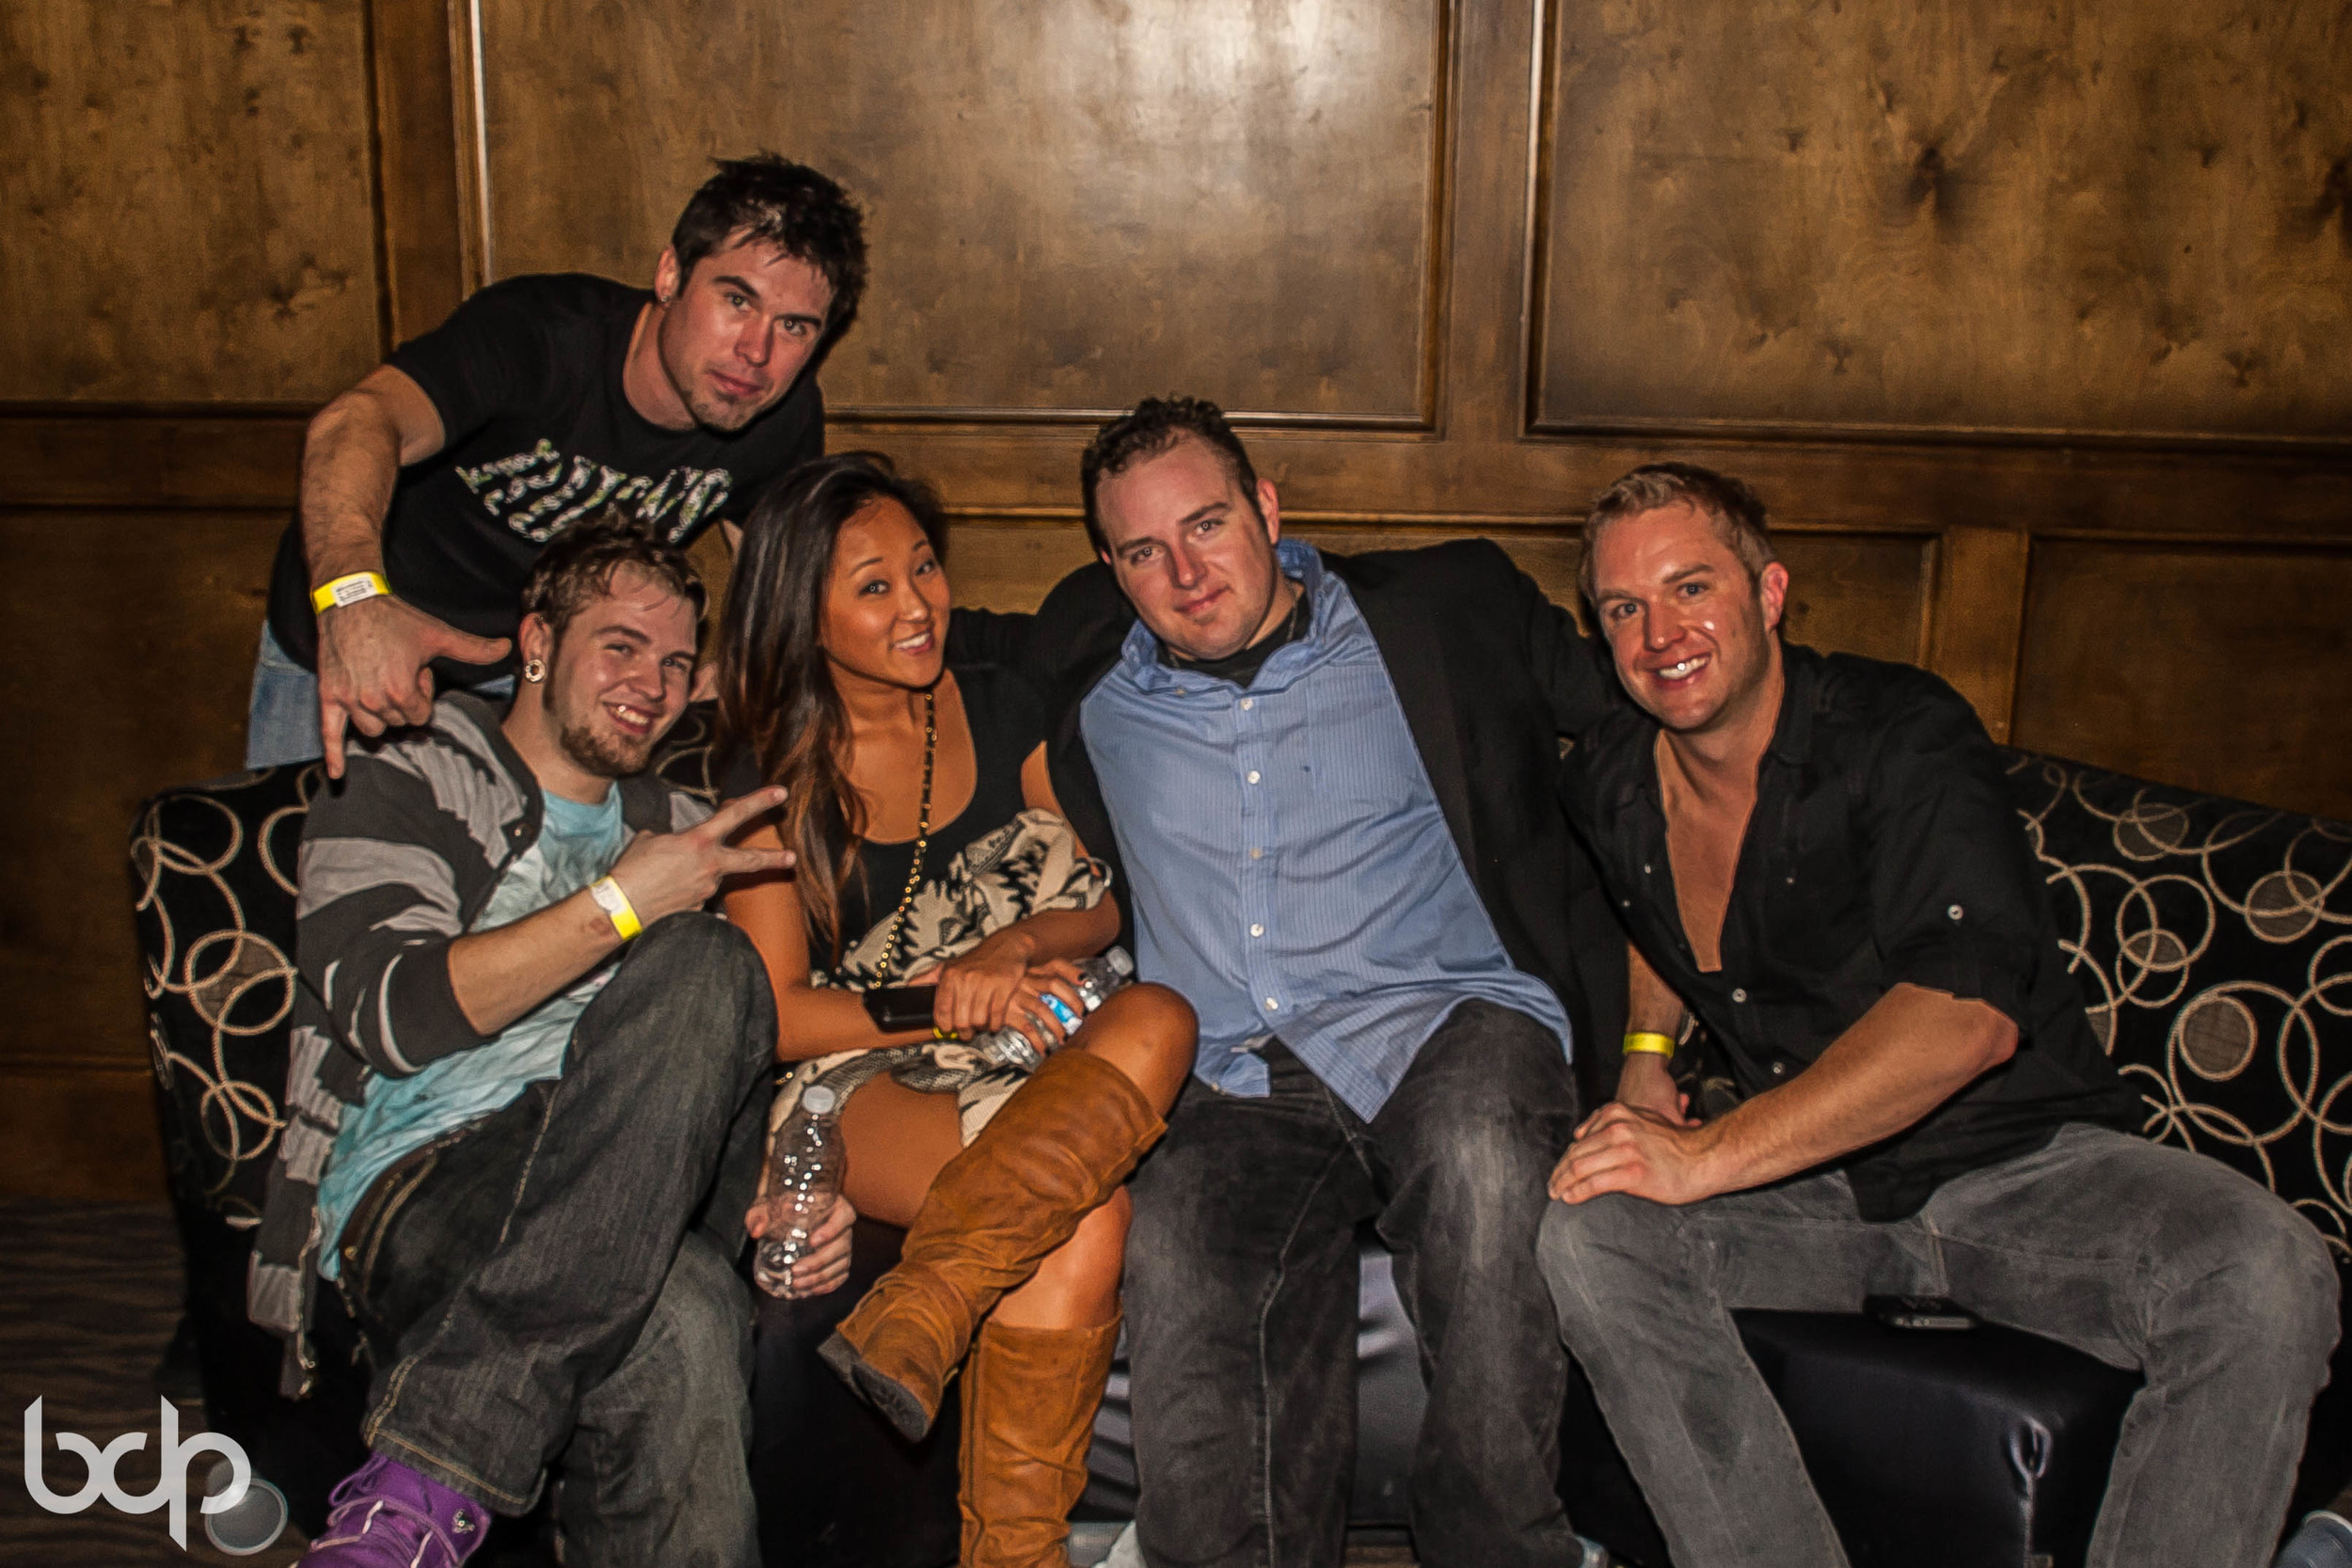 Aokify America Tour at Epic at Epic 110913 BDP-122.jpg